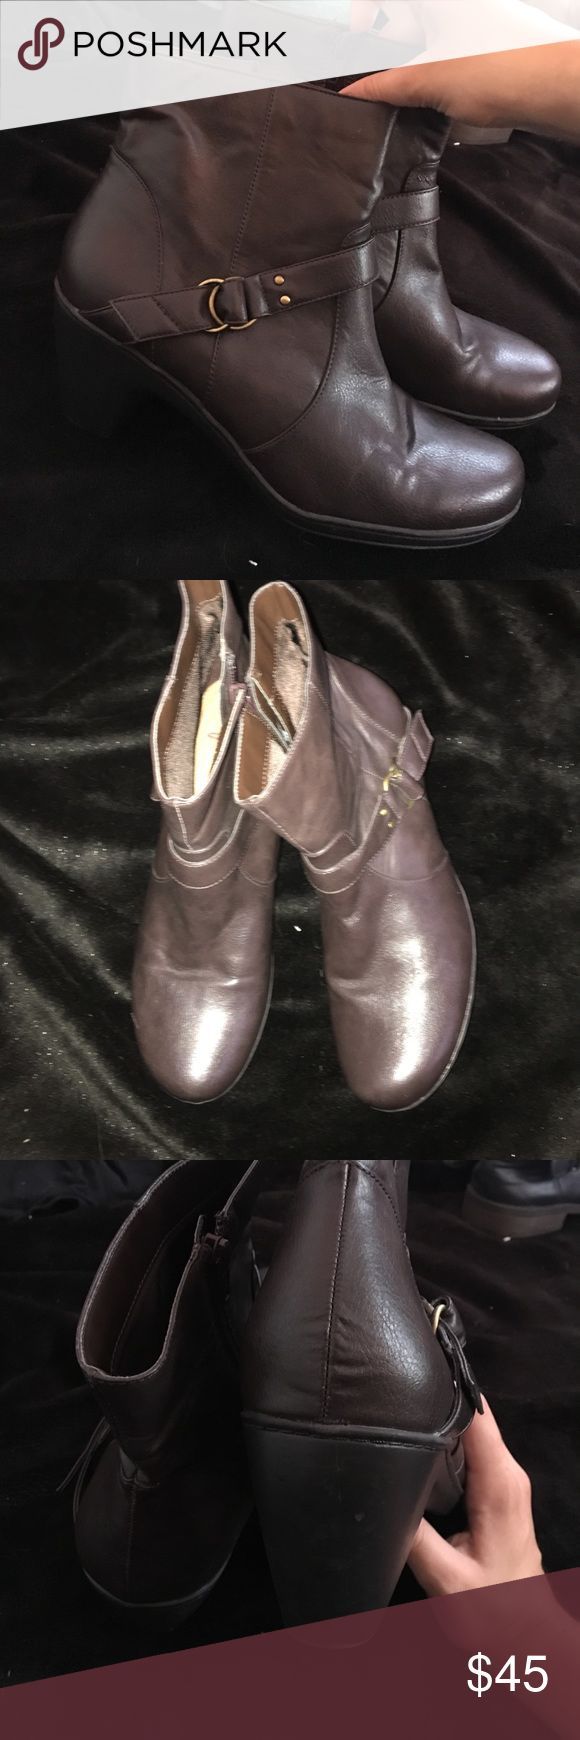 Dark Brown Ankle Boots / OFFERS ACCEPTED MUST GO Leather Dark Brown Ankle boots. good condition. zipper on side. Shoes Ankle Boots & Booties